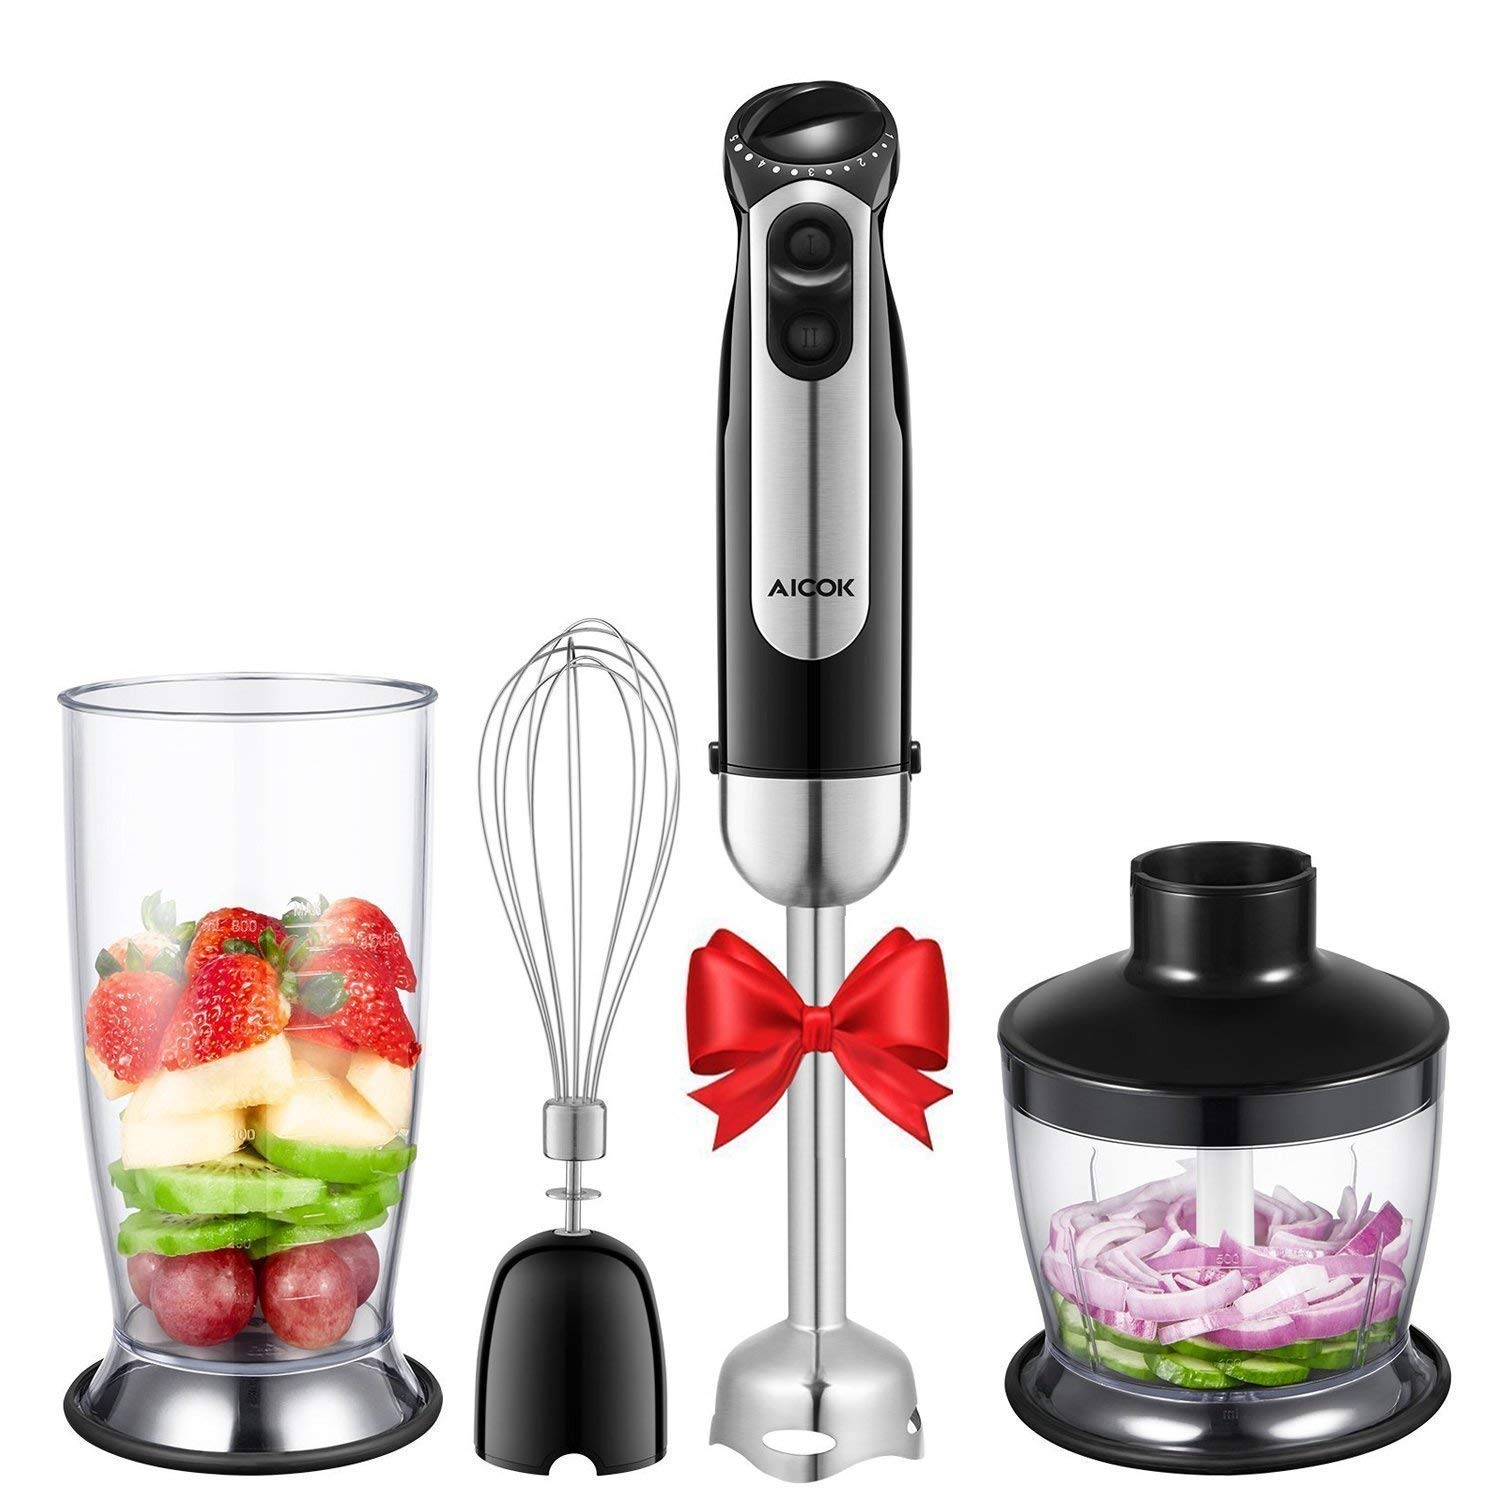 Hand Blender, Aicok 4-in-1 Immersion Stick Blender with 12 Speed Control - Powerful Hand Mixer Sets Include Chopper, Whisk, BPA Free Beaker, for Soups, Smoothie, Baby Food - Stainless Steel